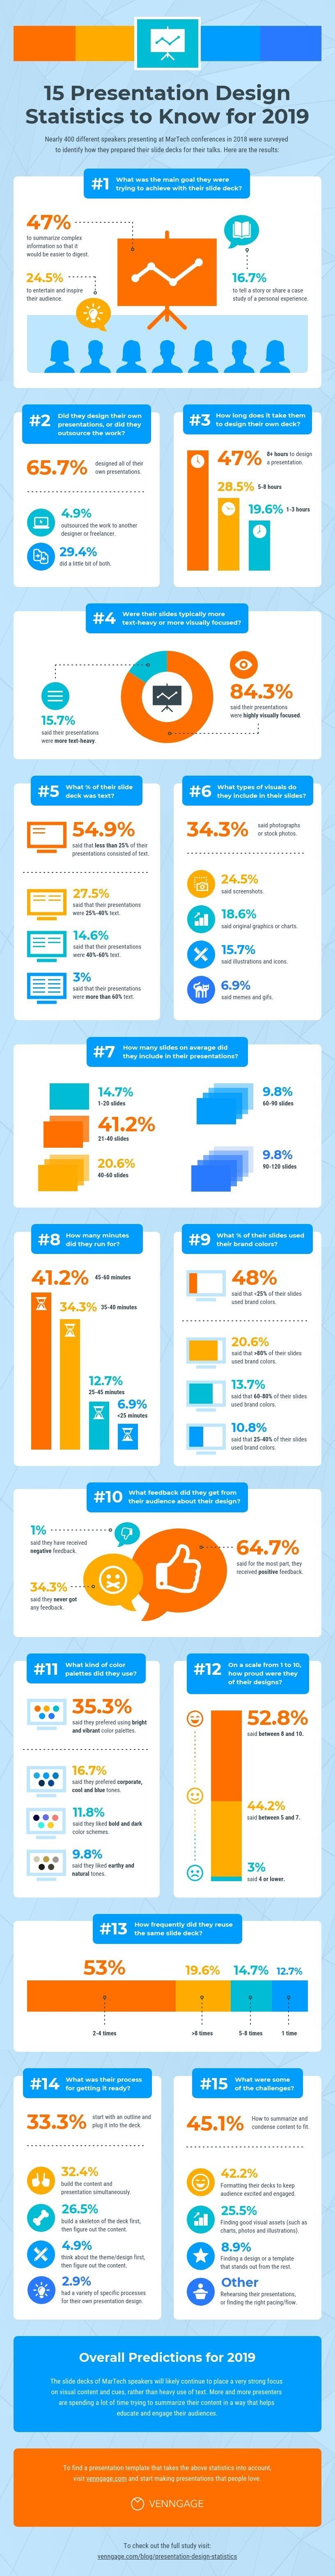 15 Presentation Design Statistics To Know For 2019 Infographic Presentation Design Infographic Marketing Infographic